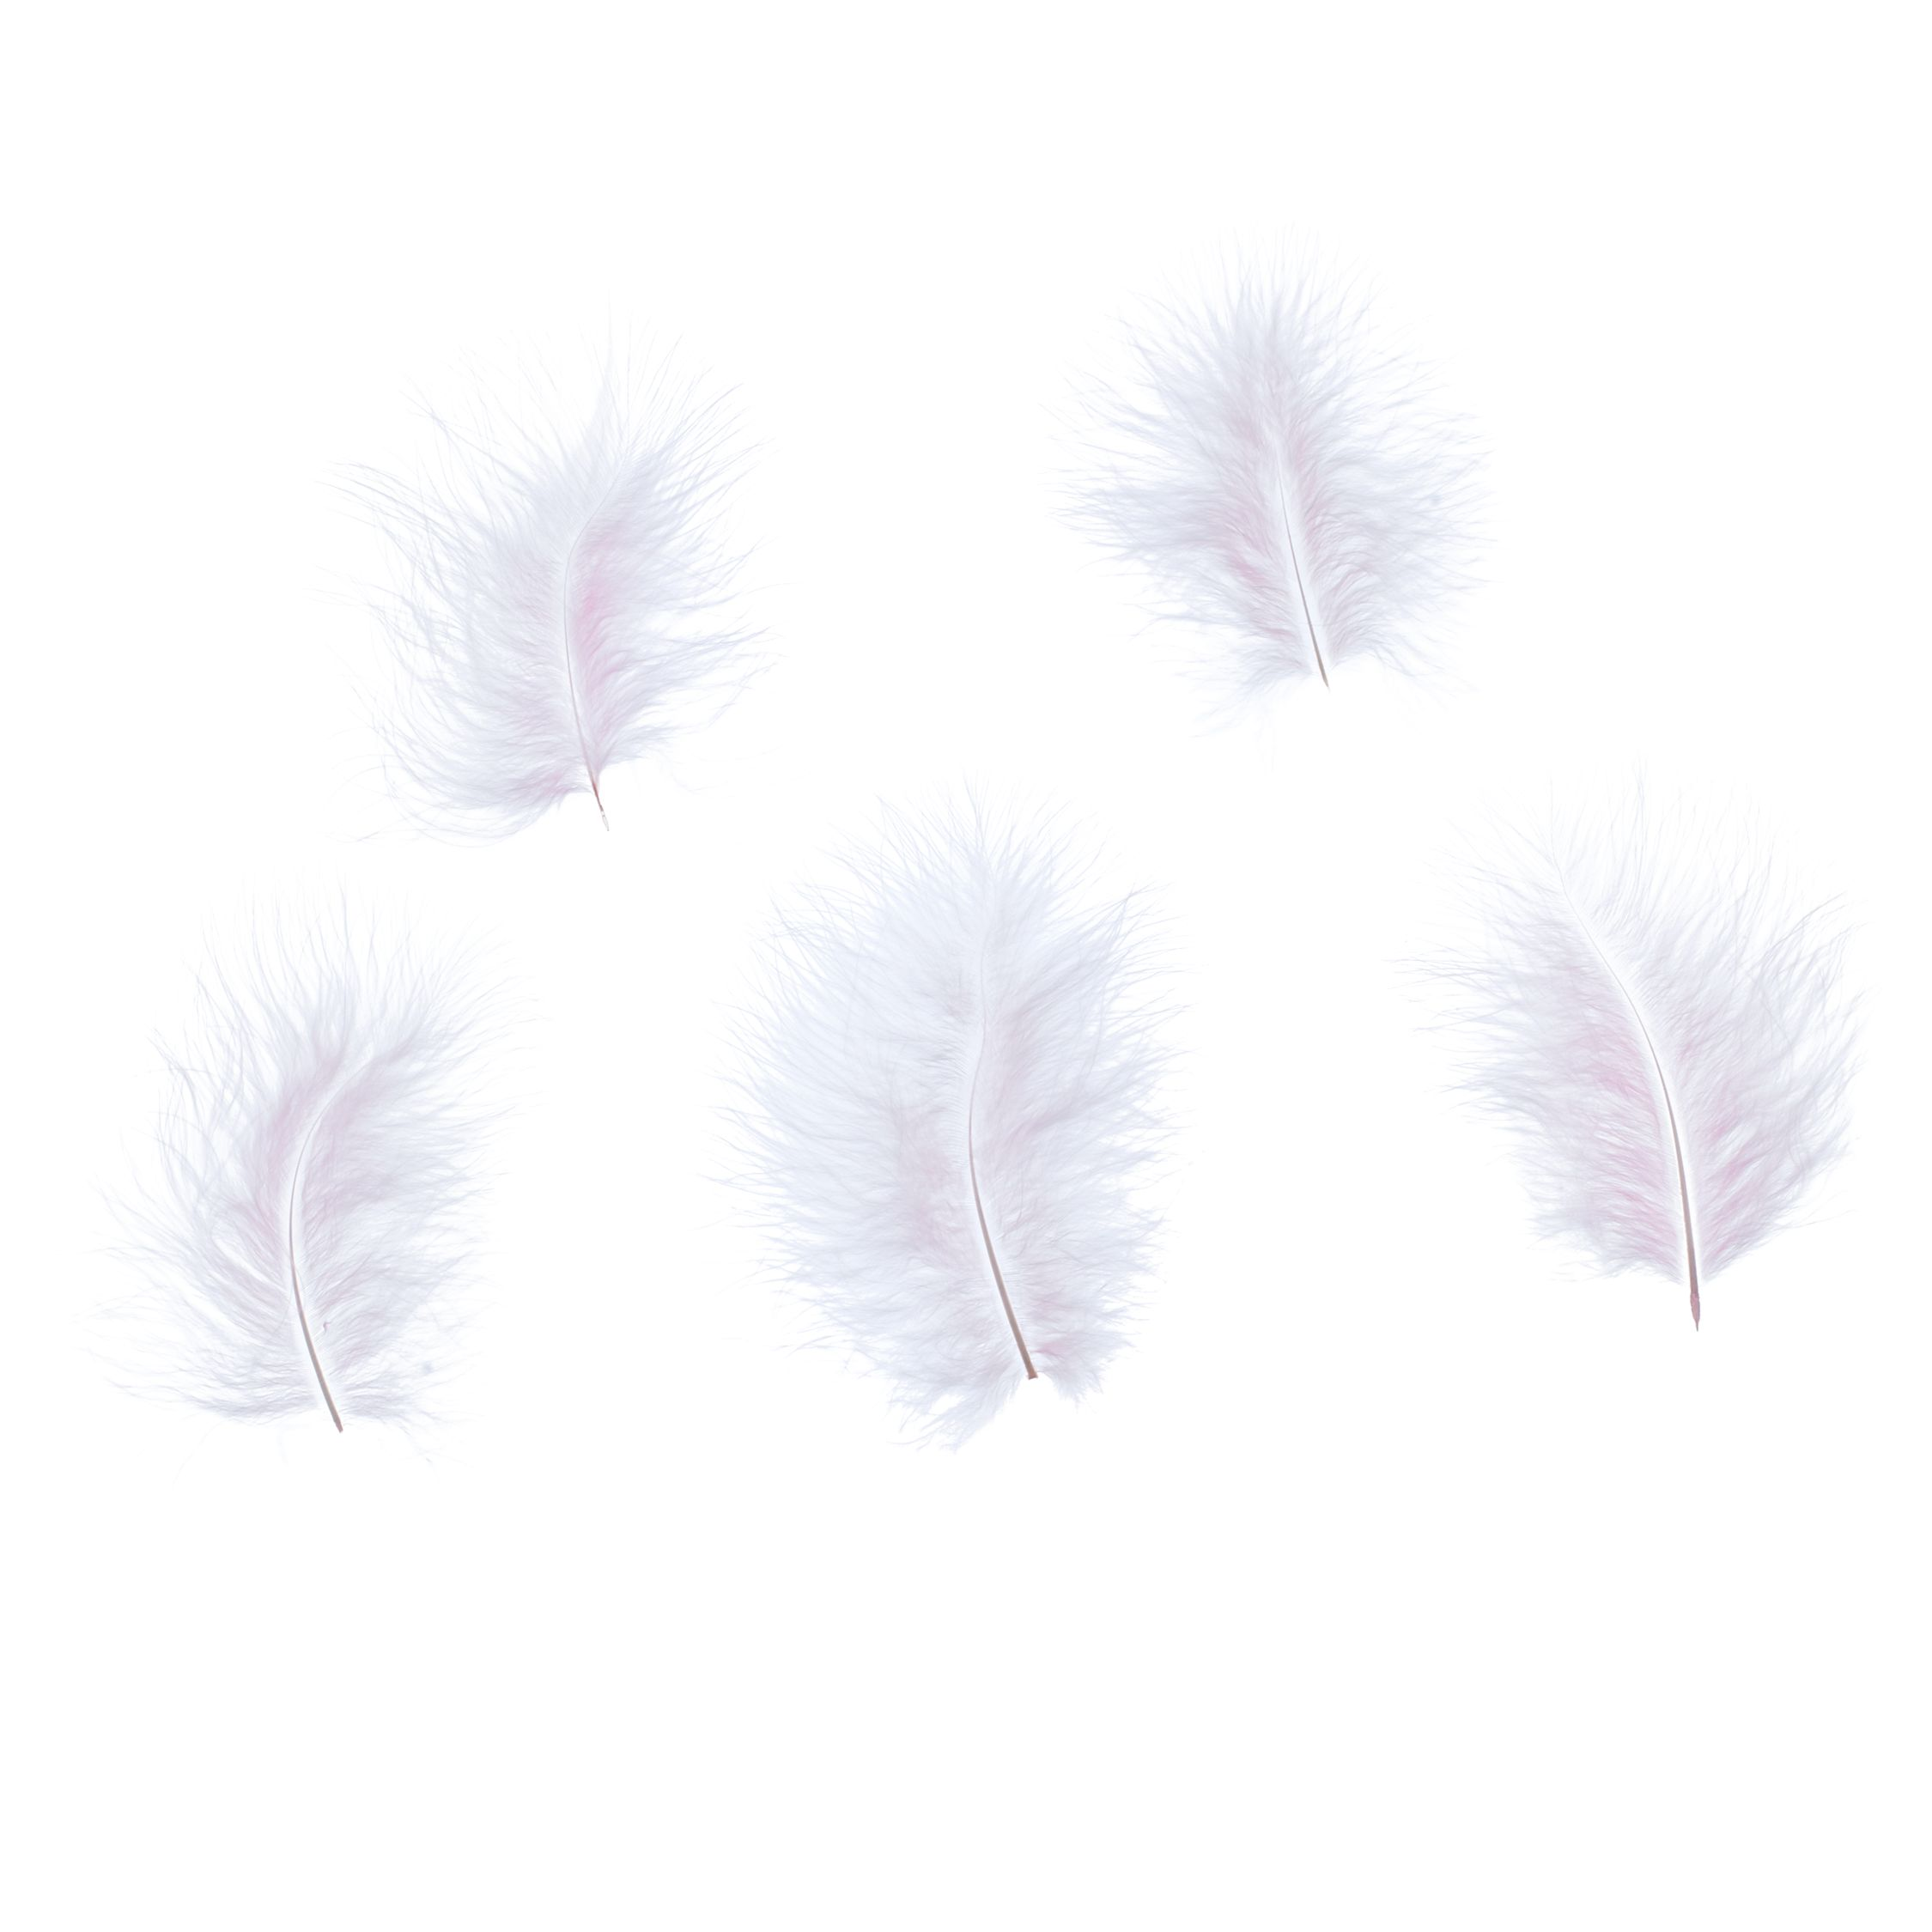 John Lewis Marabou Feathers, Pack of 5, Pink